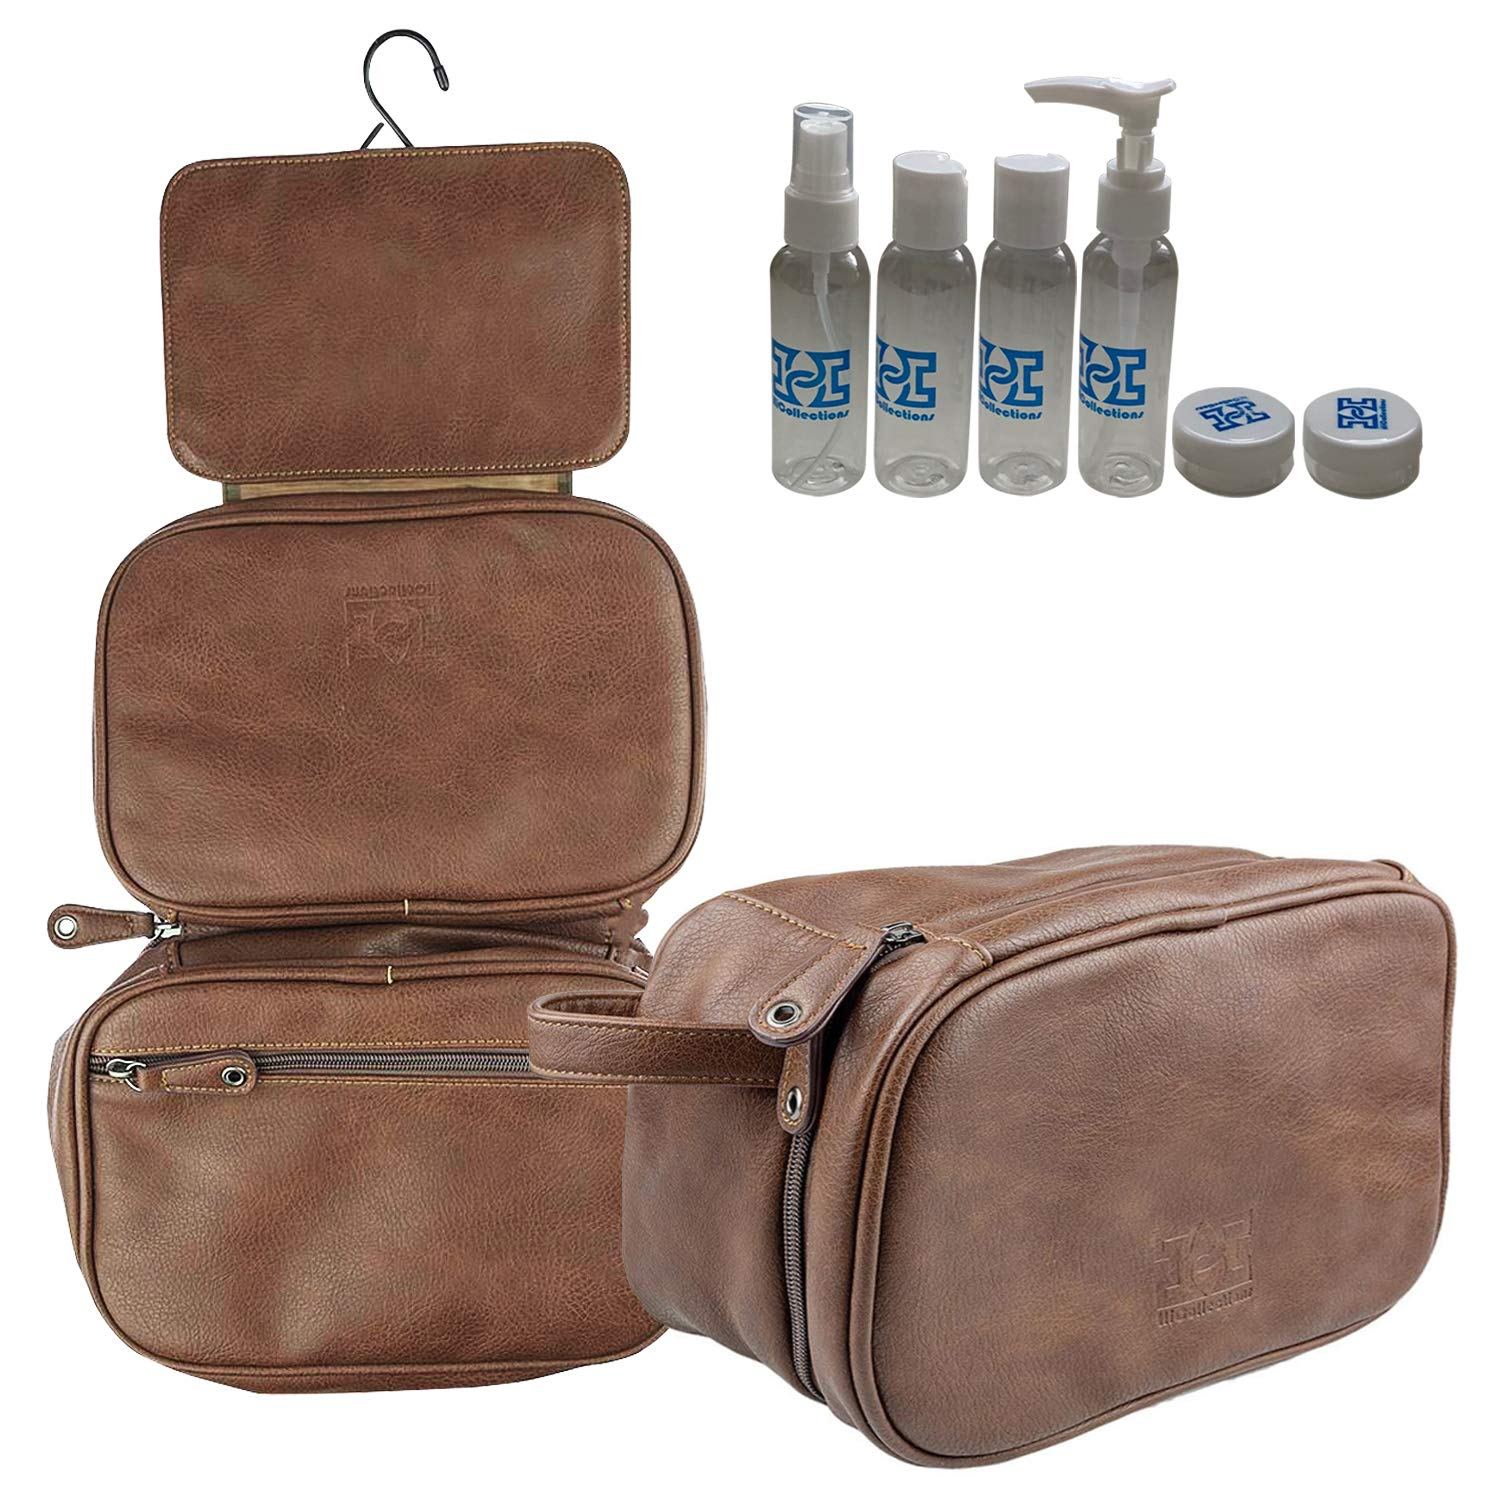 a68c8cef4130 HiCollections Mens Hanging Toiletry Bag, 3 Large Compartments, Waterproof  and Easy Foldable PU Leather Wash Bag for Men with Strong Hook, Bonus 4  Pics ...